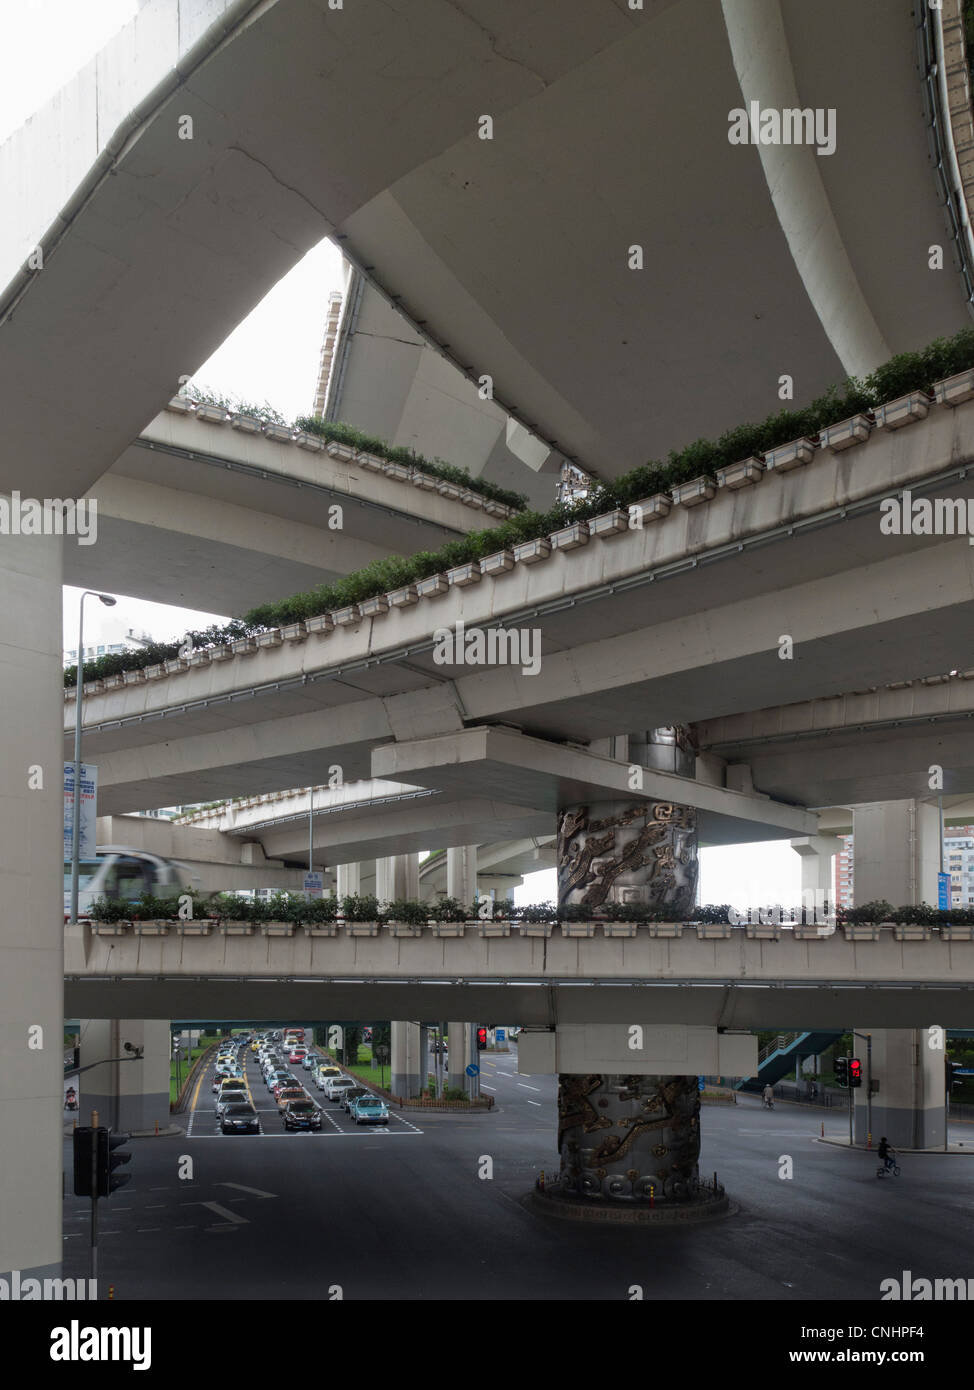 Series of intersecting overpasses, Shanghai, China - Stock Image